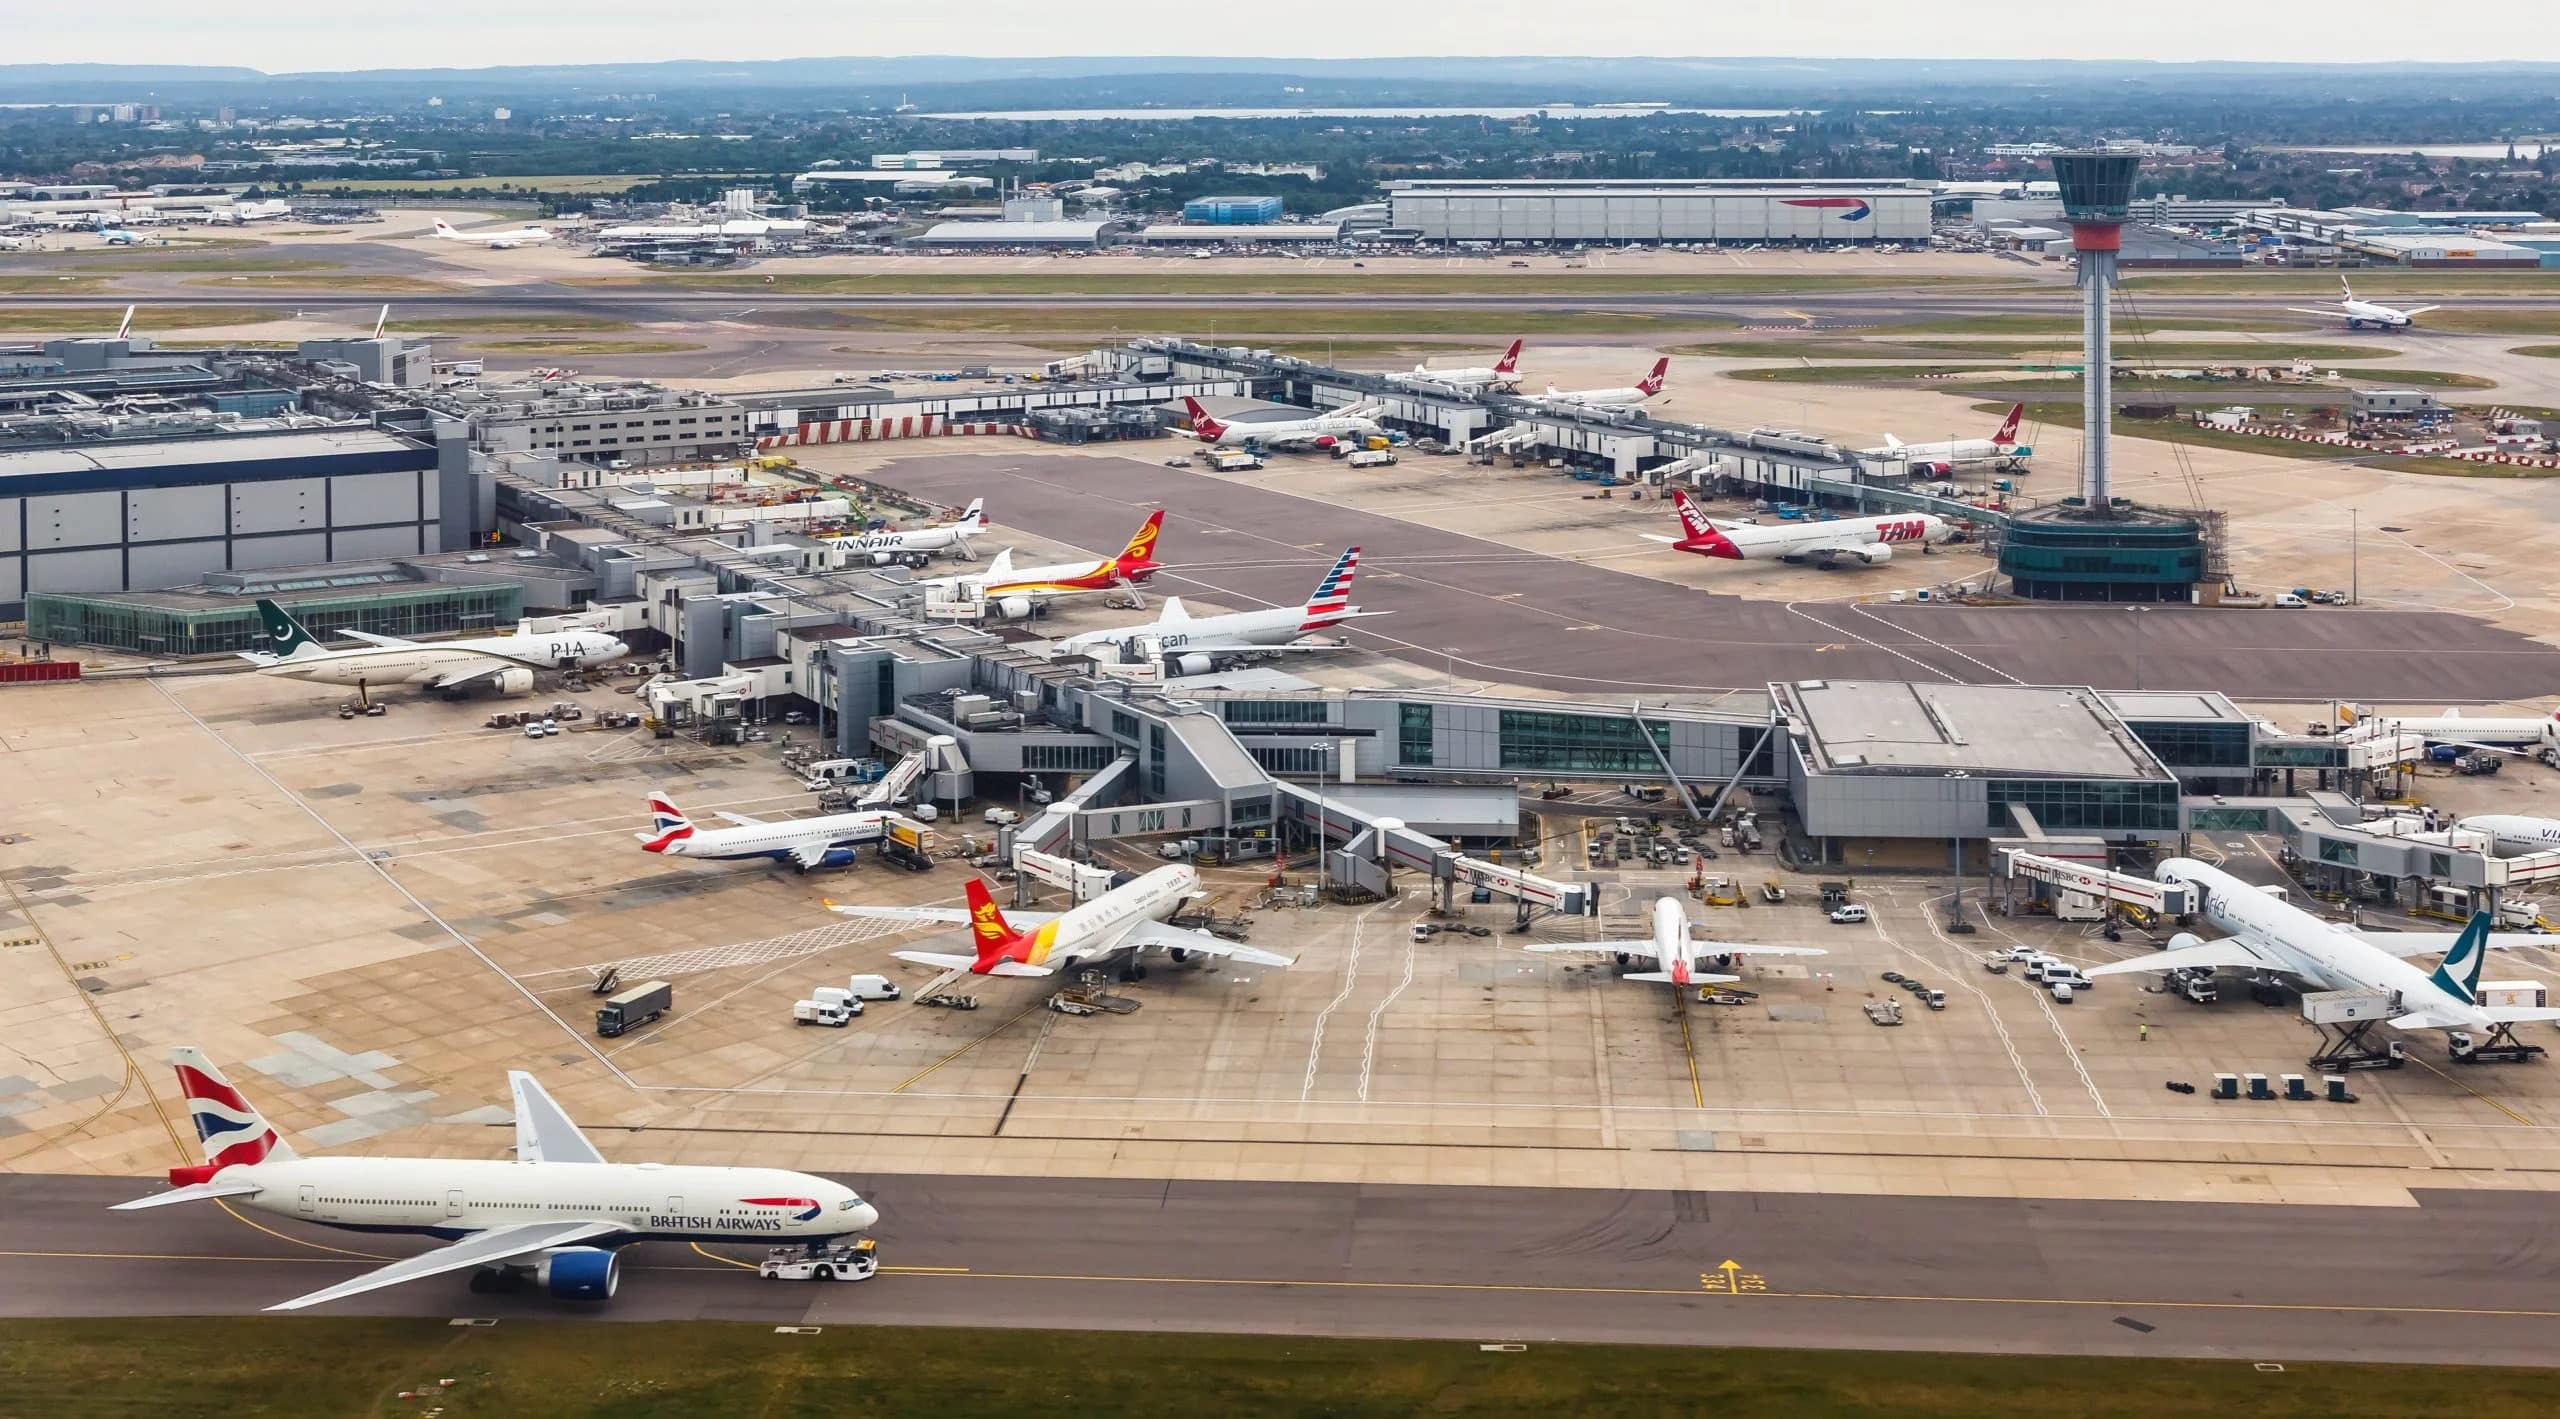 Government won't appeal court decision to block third runway at Heathrow